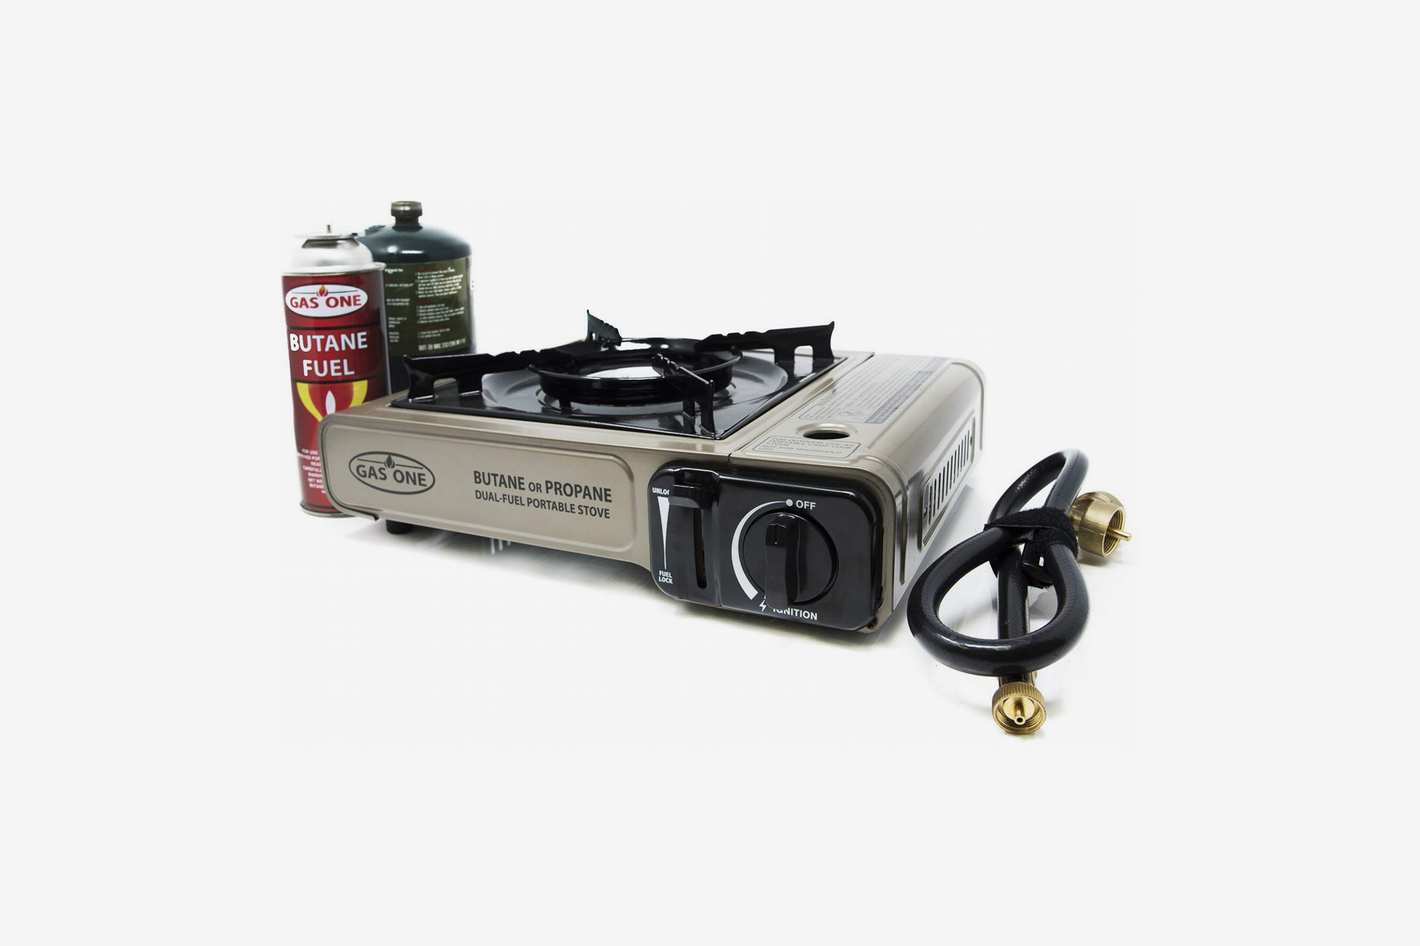 Gas ONE New GS-3400P Dual Fuel Portable Propane & Butane Camping Gas Stove Burner With Carrying Case